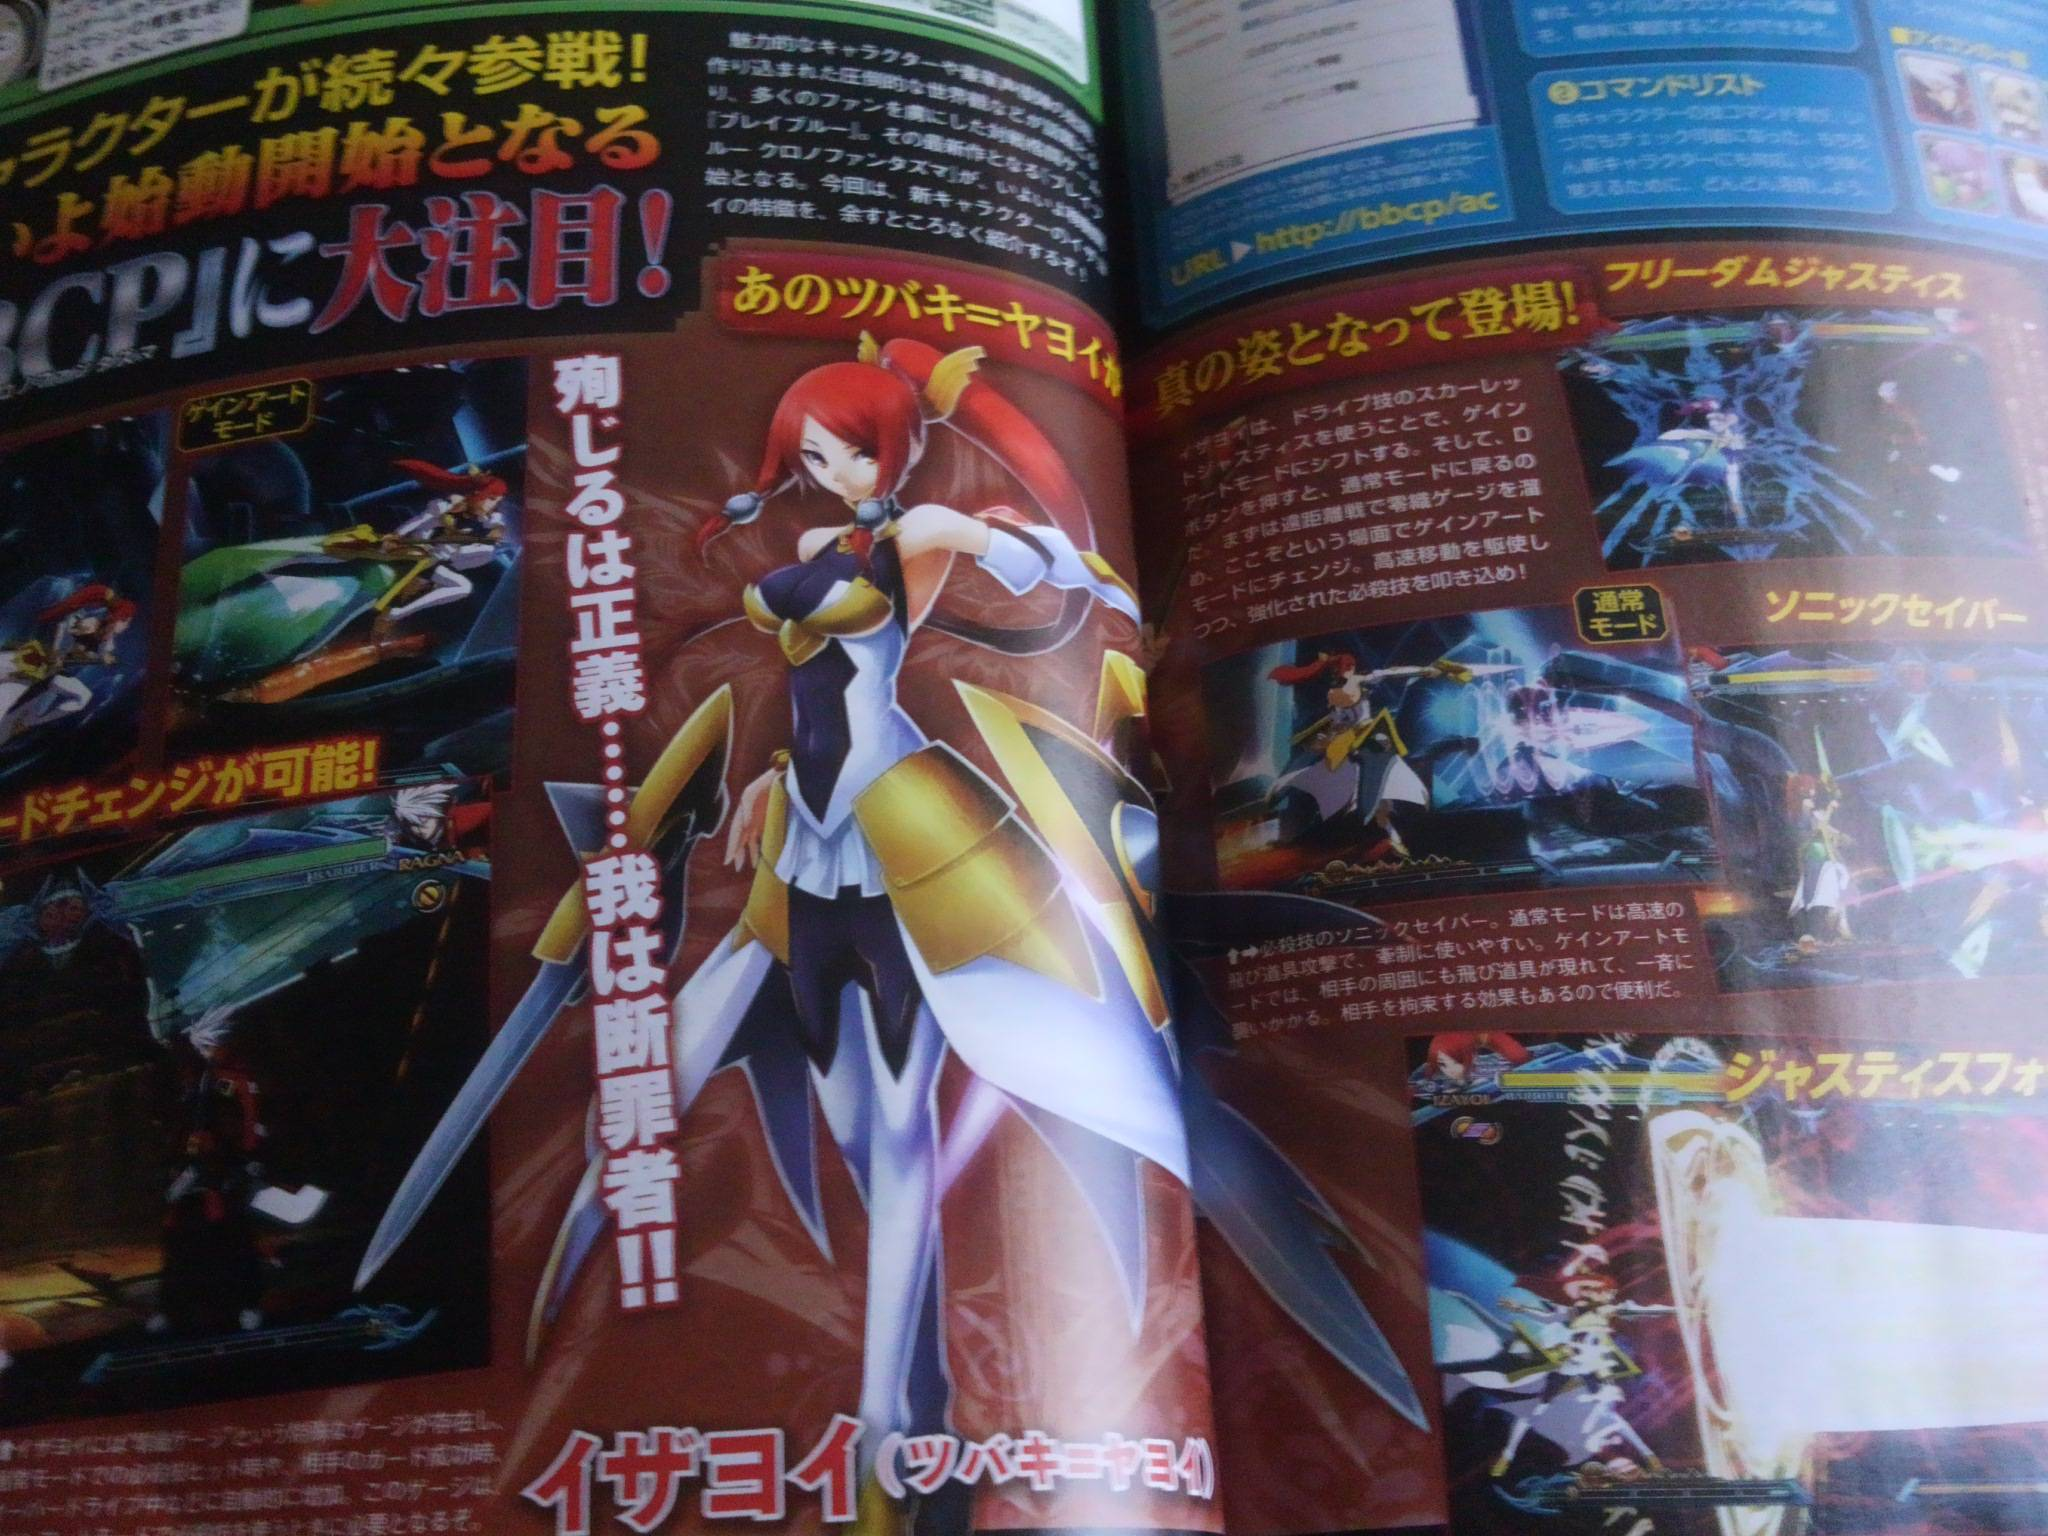 insanecyclone games with characters system guard mode from your blazblue gauge fighting players entertainment quickly unique attacks barrier crush when story celica will natsume kajun featuring faycott also revamped abilities lambda playable opponents using extend perform chrono phantasma playstation flashy take drive combos brand joining meter skills summer roster features stylish